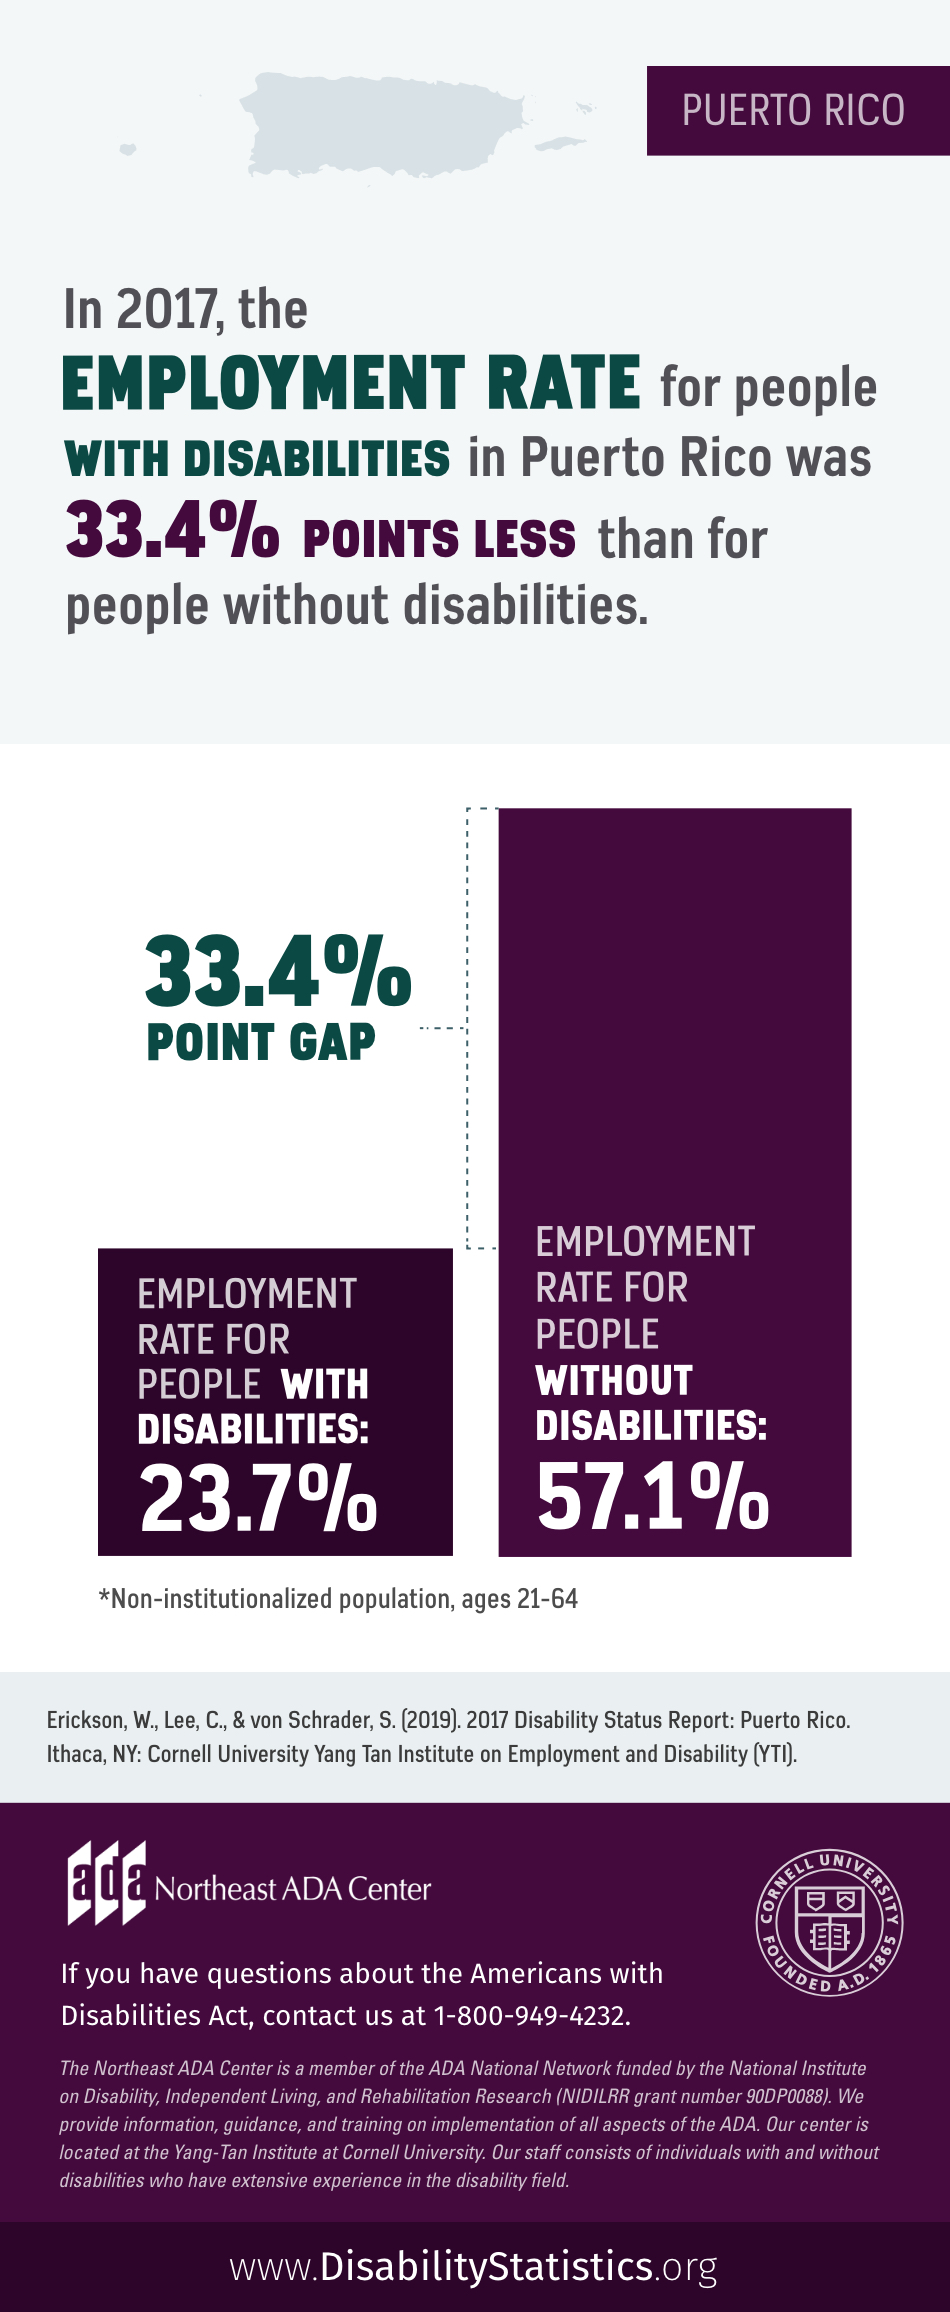 Infographic featuring text on top of an outline of Puerto Rico along with a bar graph showing employment rates for people with disabilities and people without disabilities in the territory: